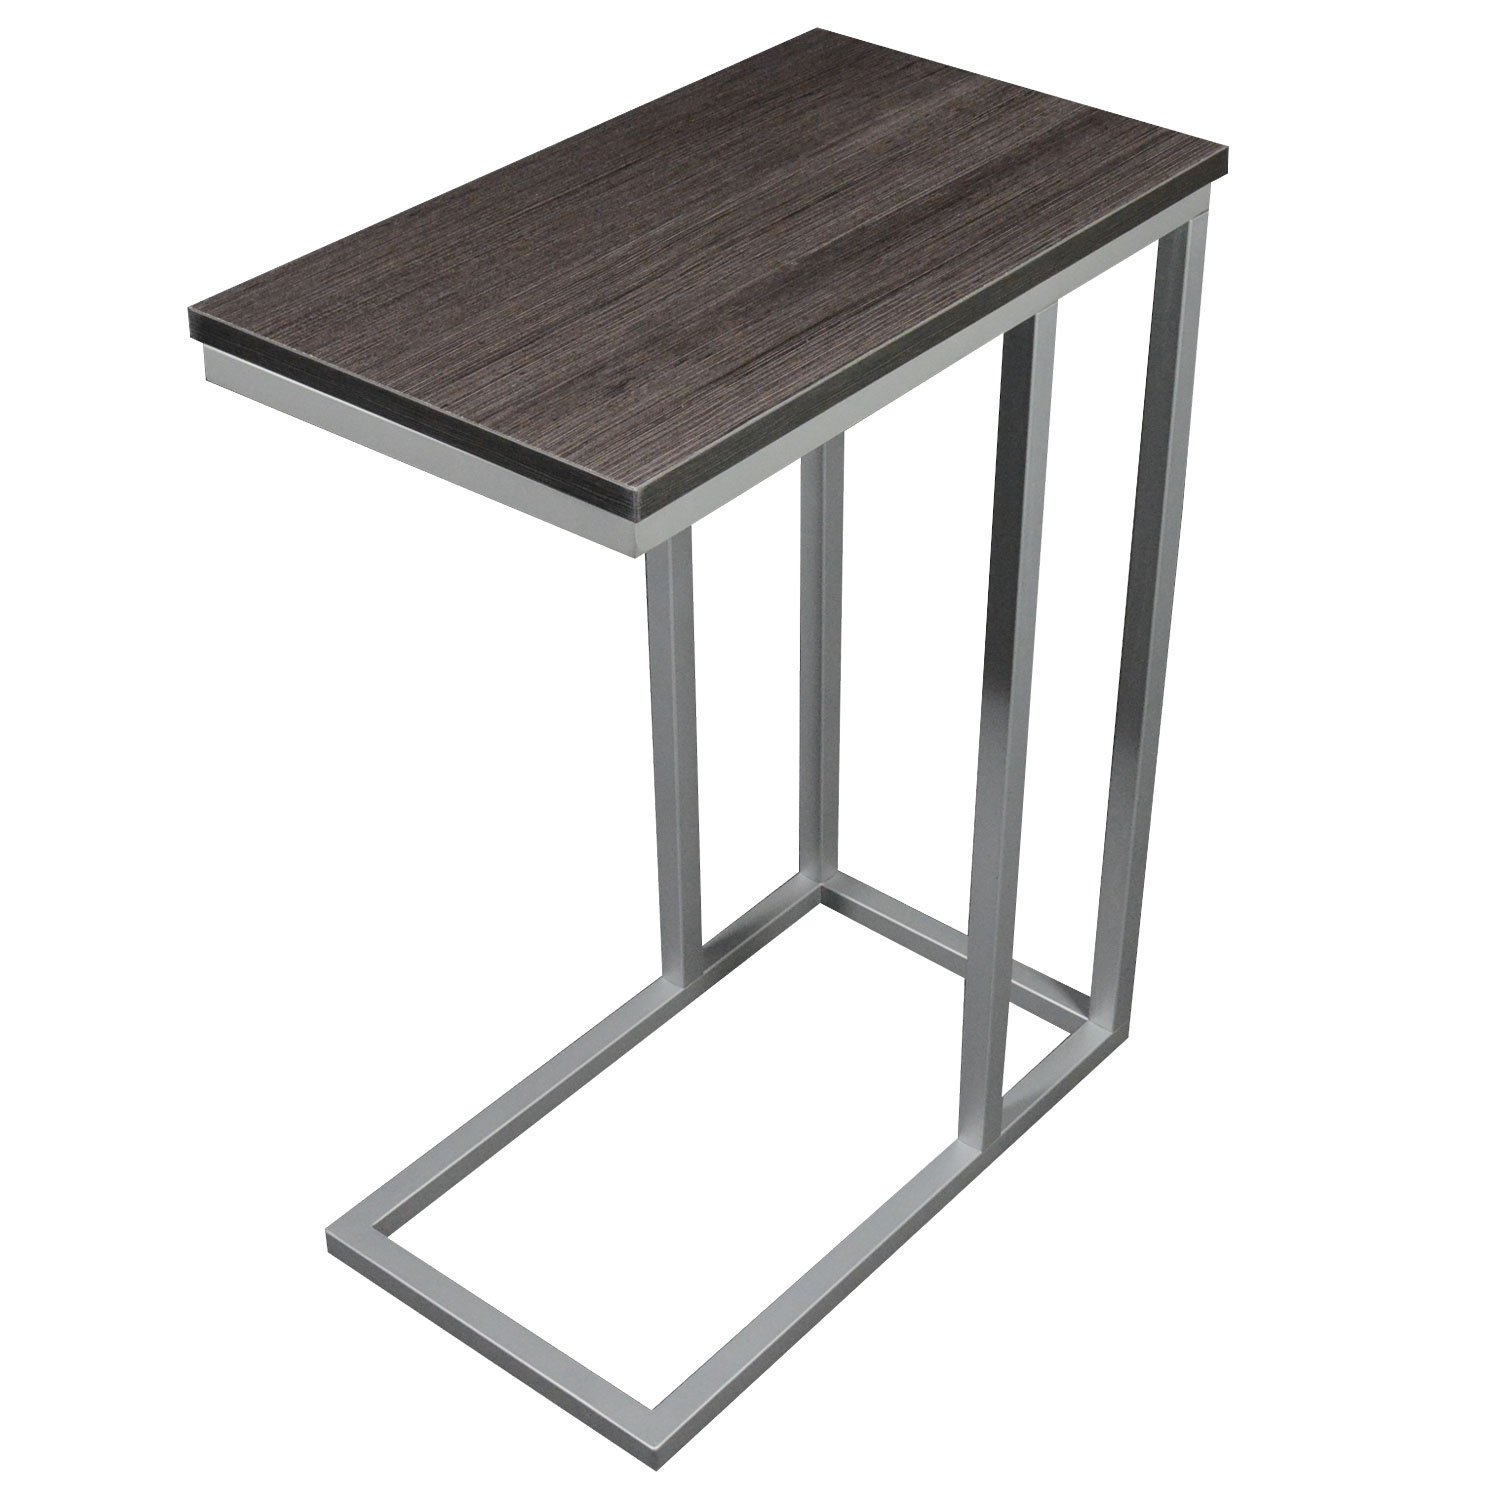 The Austin C Table/End Table/Laptop Stand, Zebra Wood Finish Laminate Top/Silver Base with Adjustable Glides